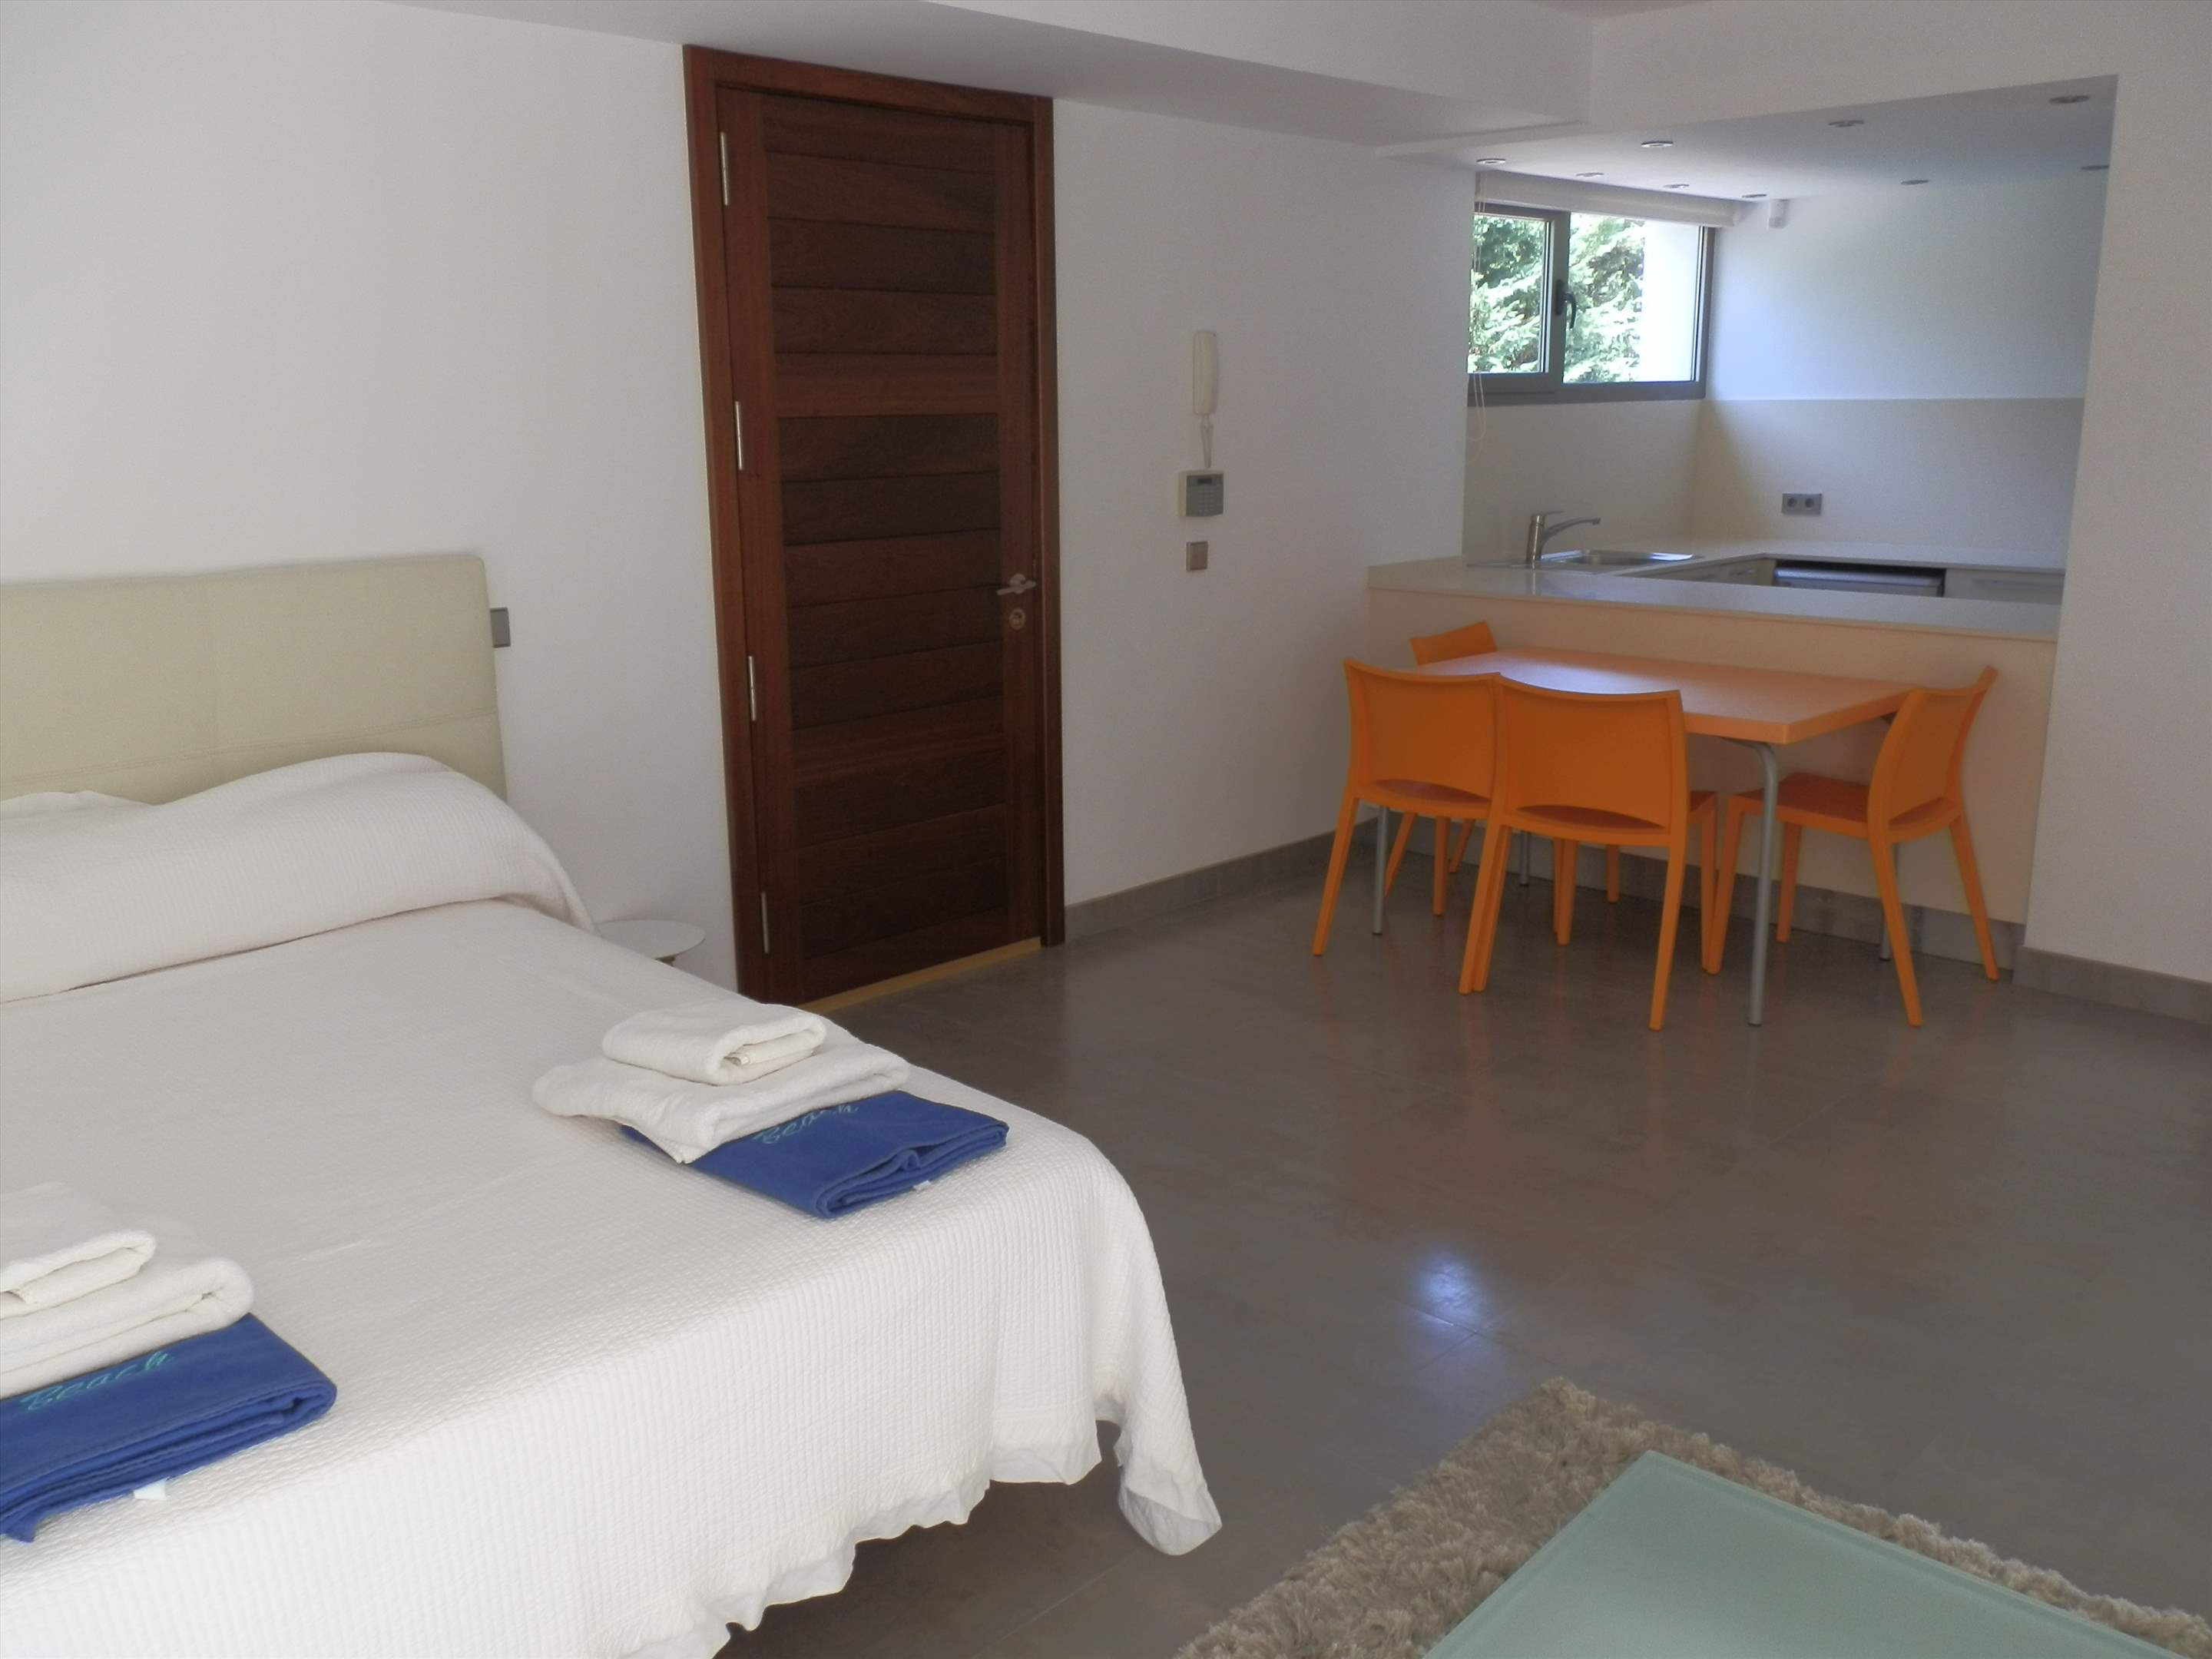 Casa Pitiusa, 4 Bedroom rate, 4 bedroom villa in Mahon, San Luis & South East, Menorca Photo #23